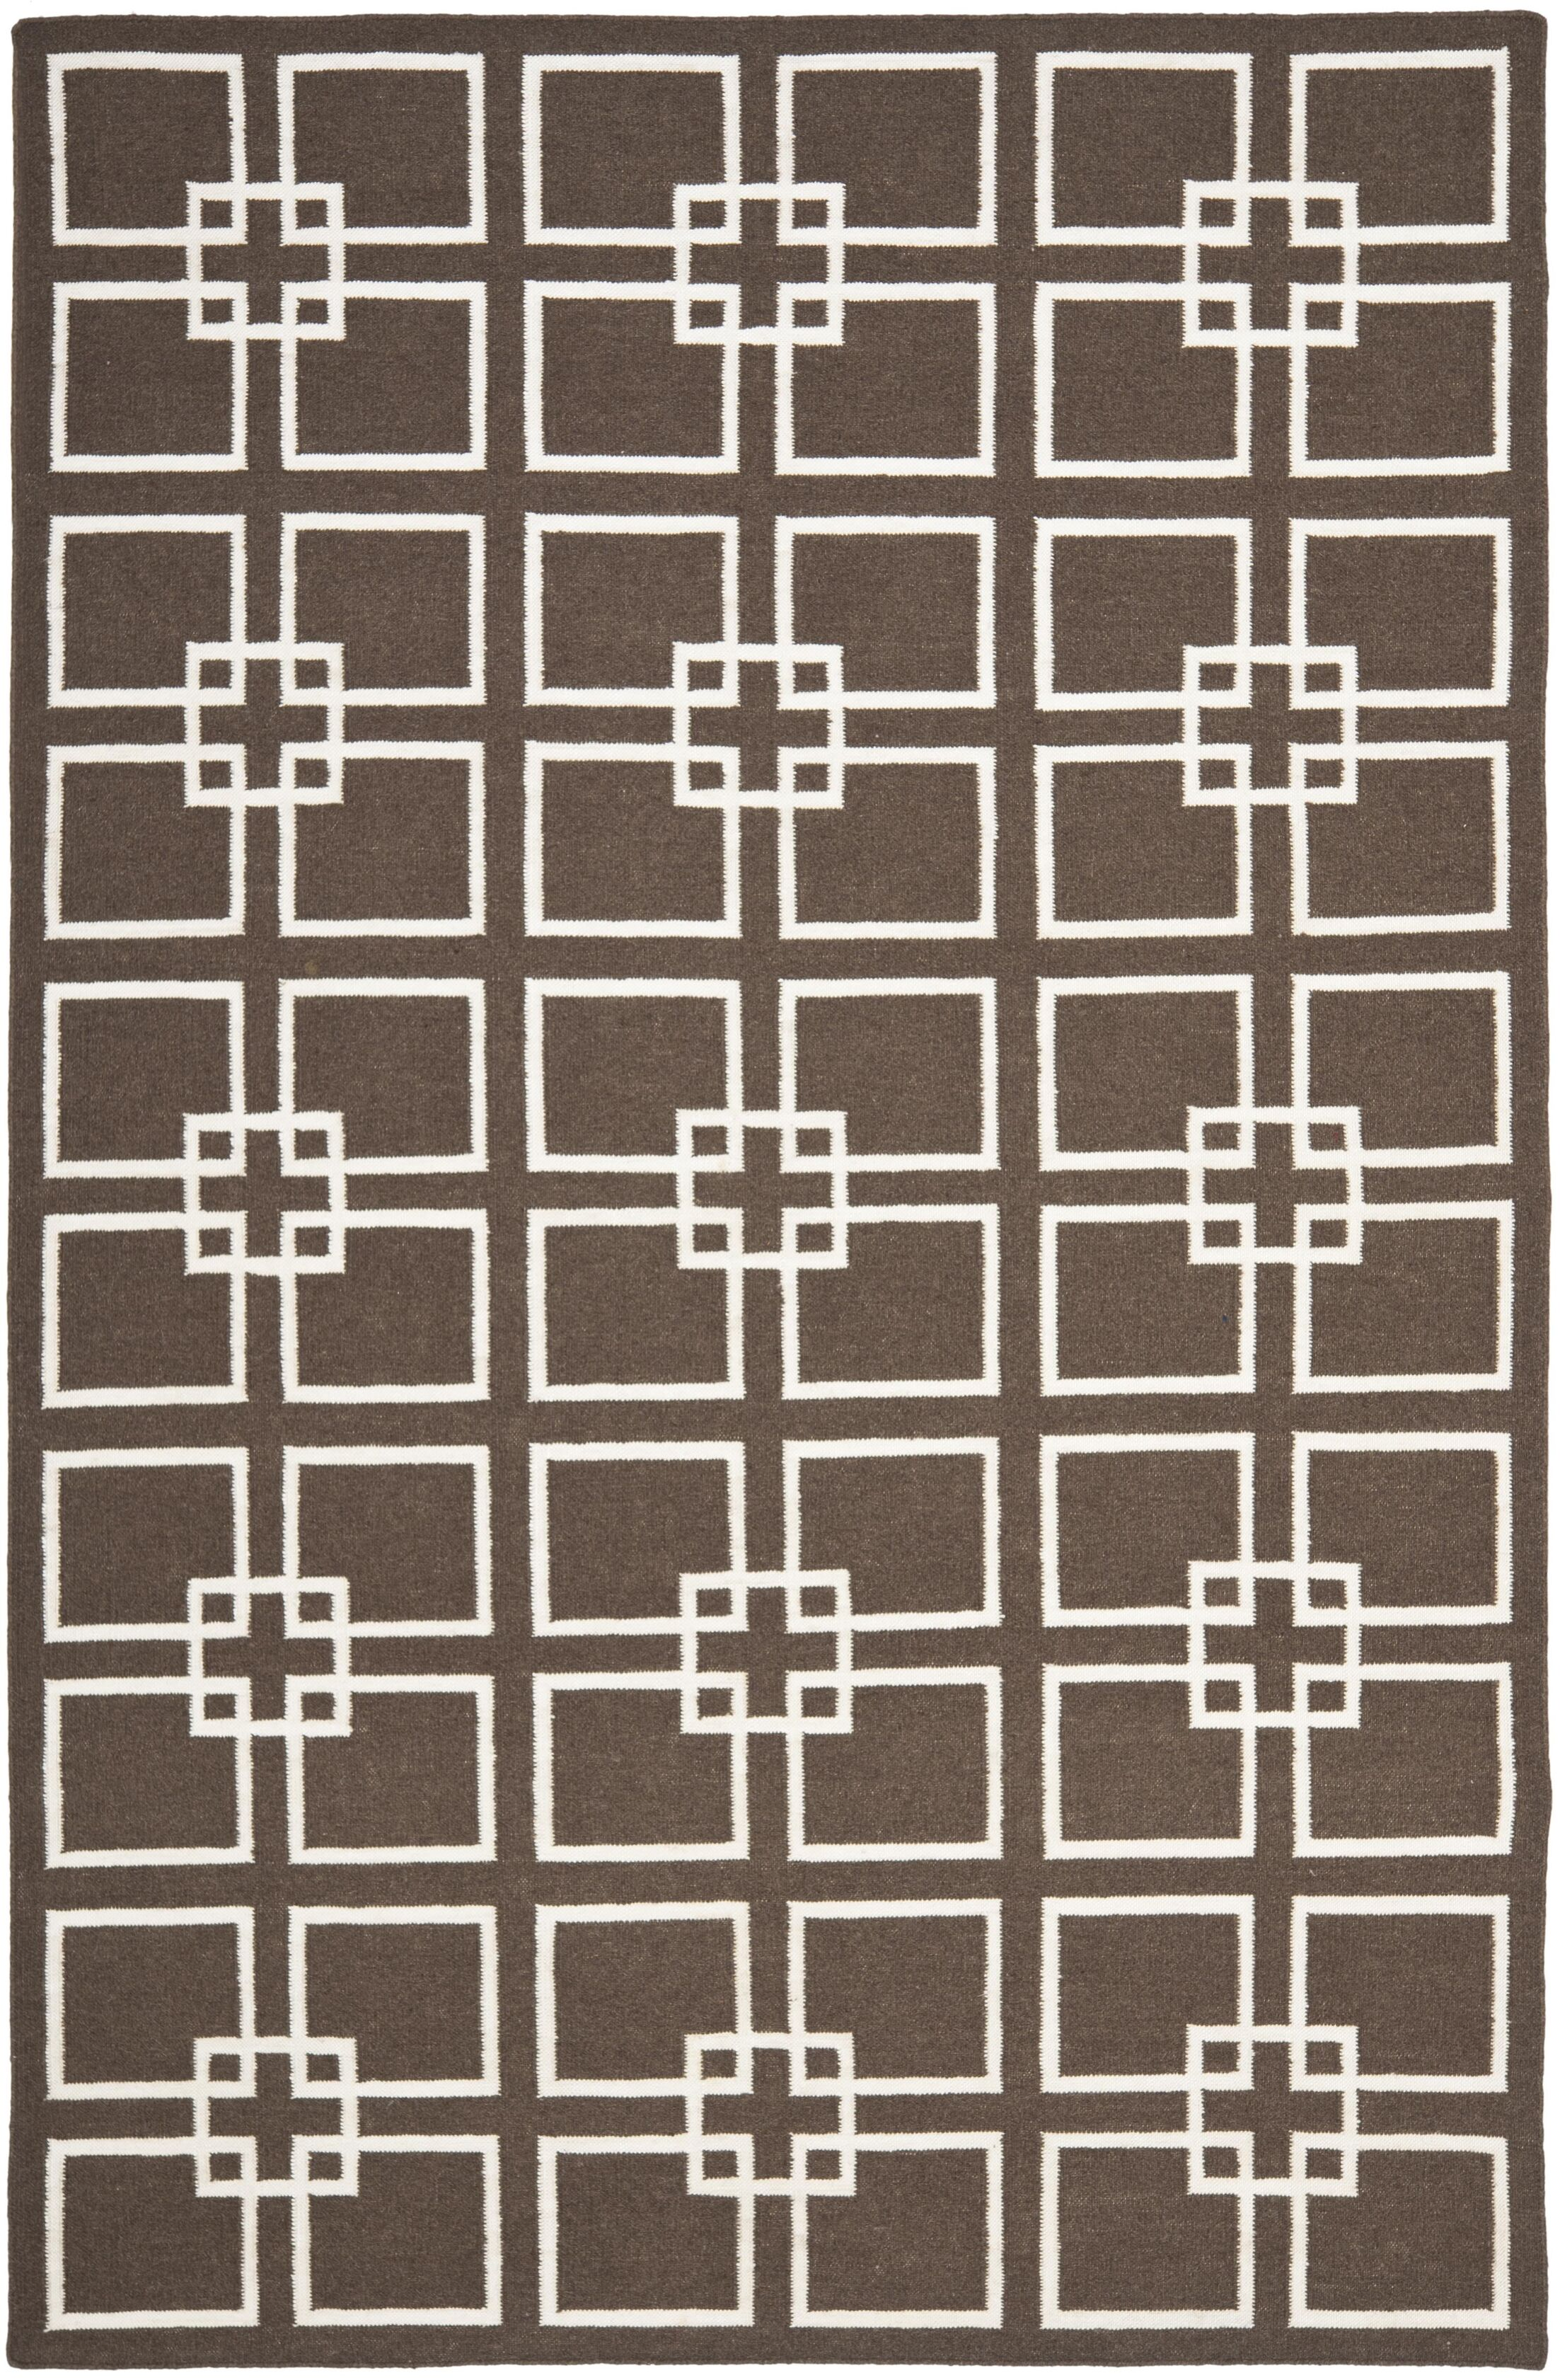 Dance Hand-Tufted Soil Brown Area Rug Rug Size: Rectangle 4' x 6'